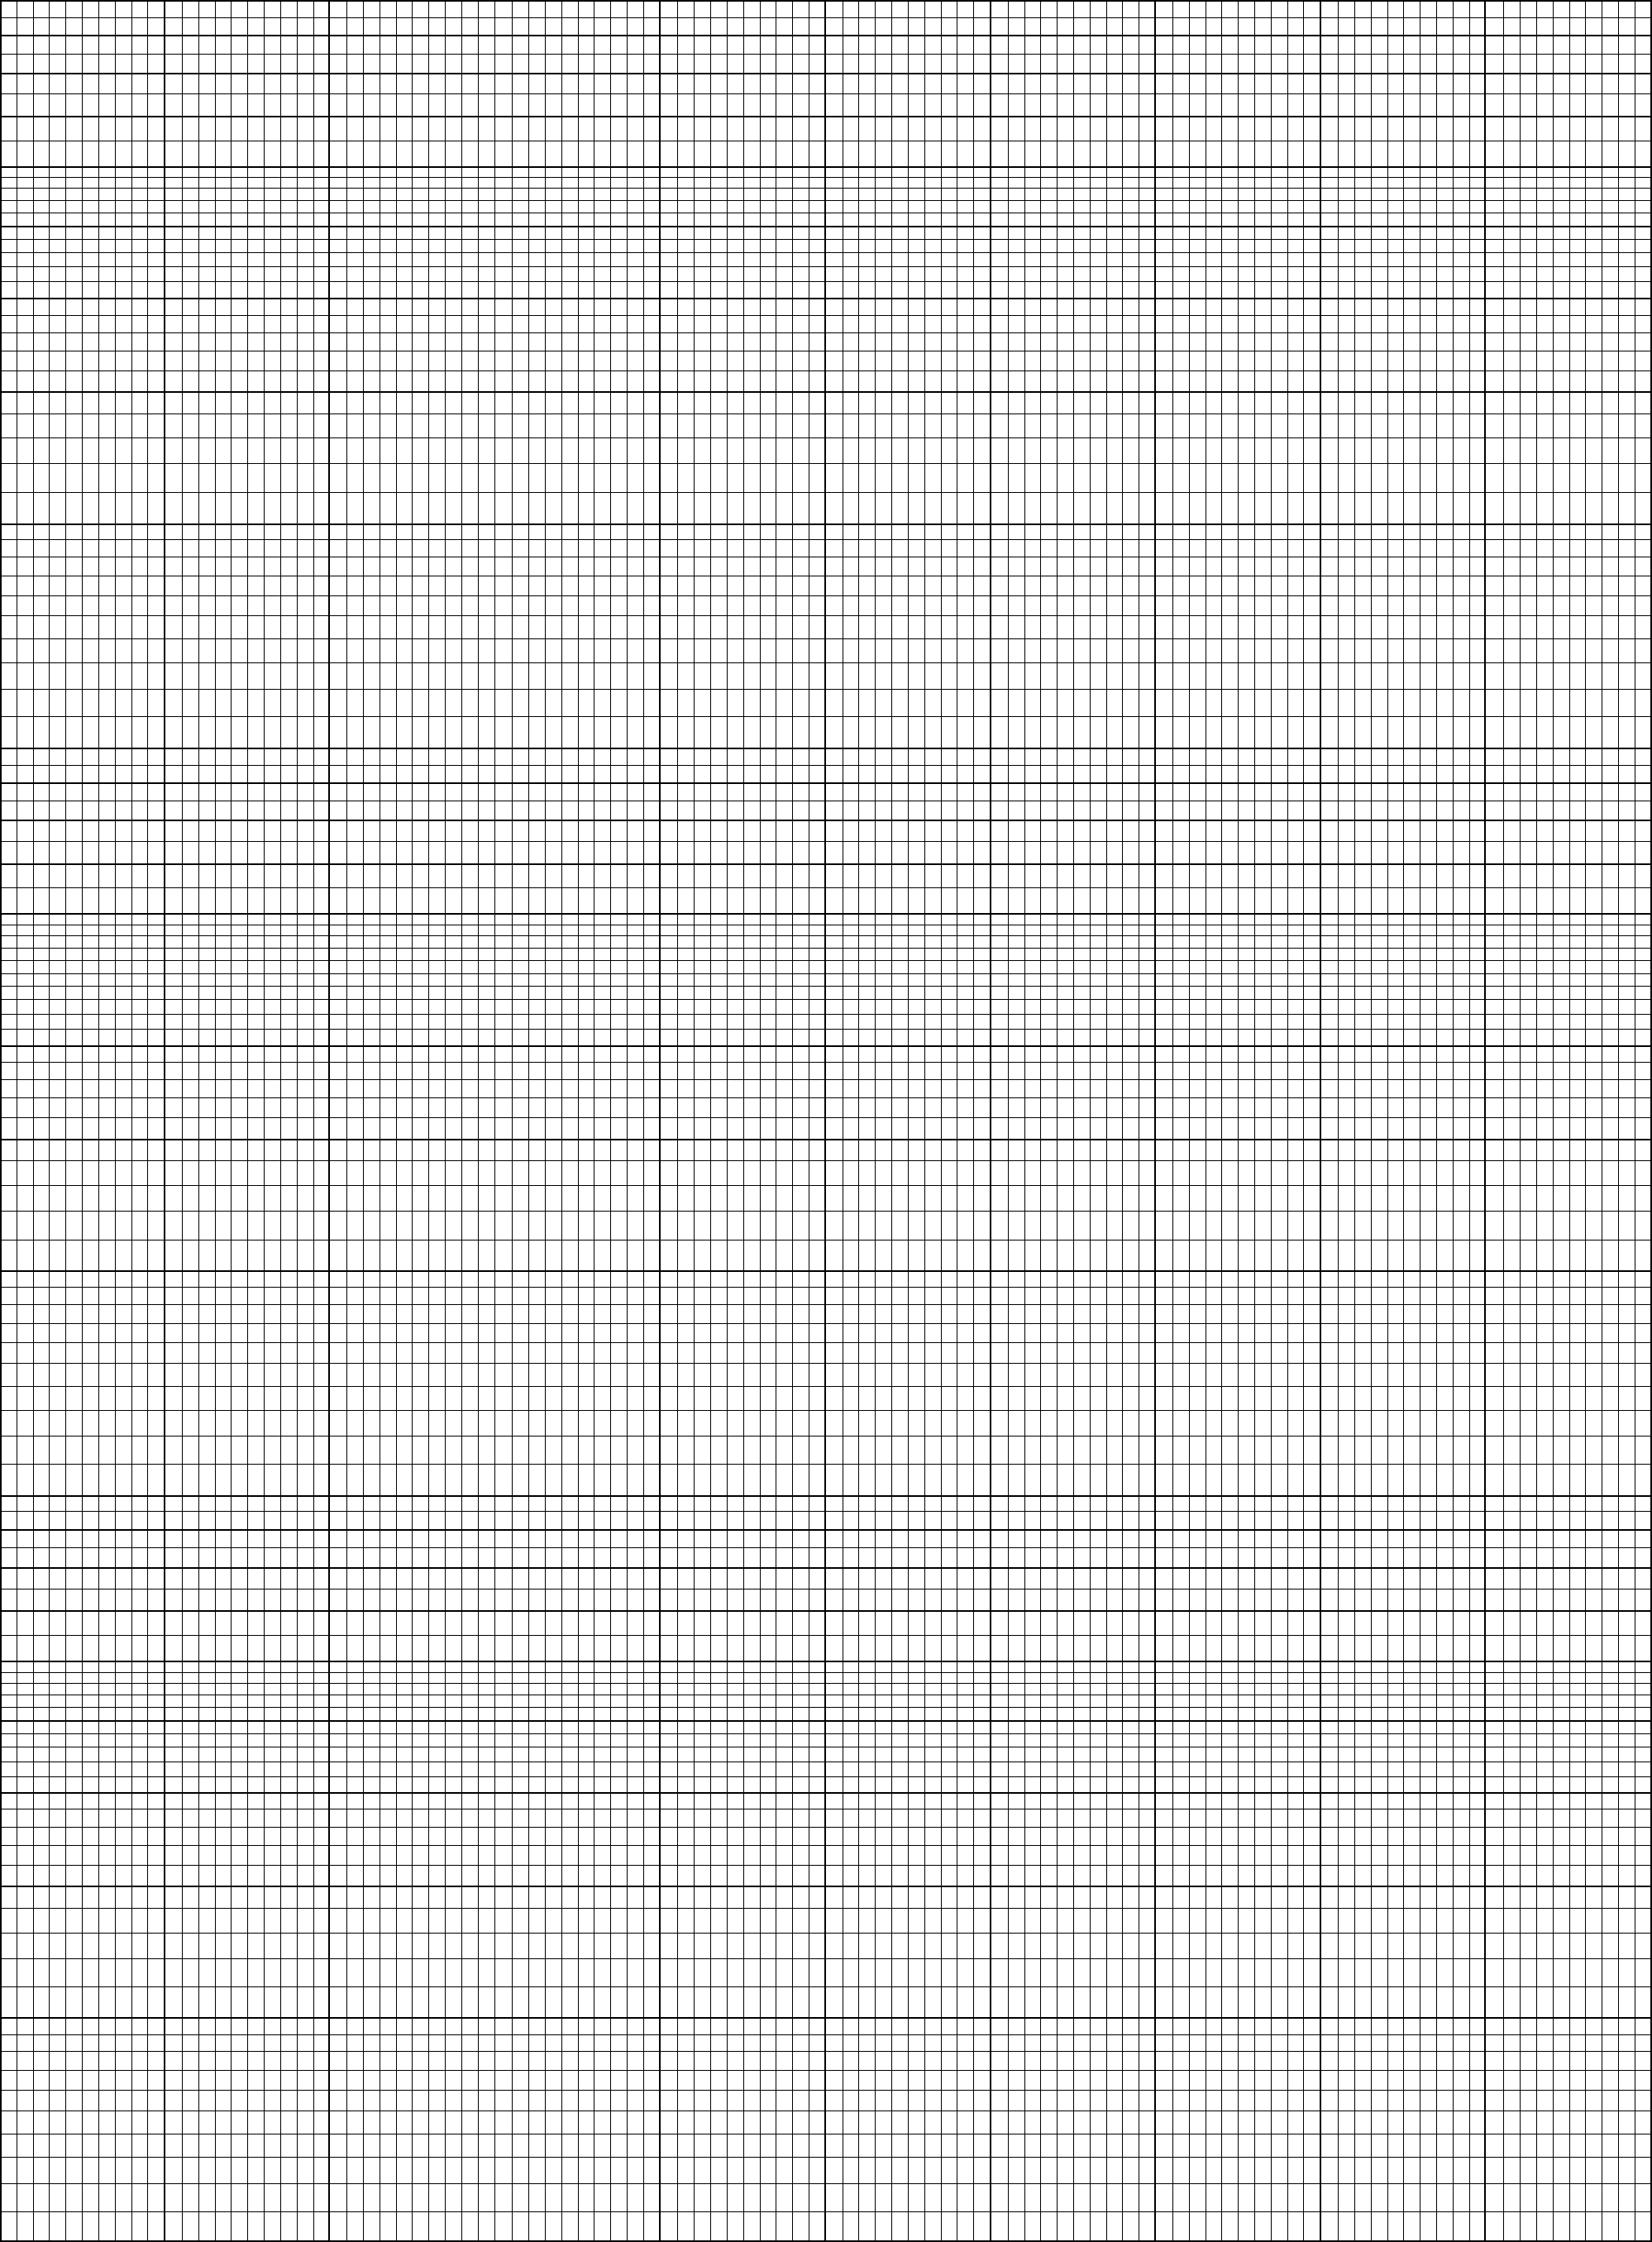 semi log numbered graph paper template free download